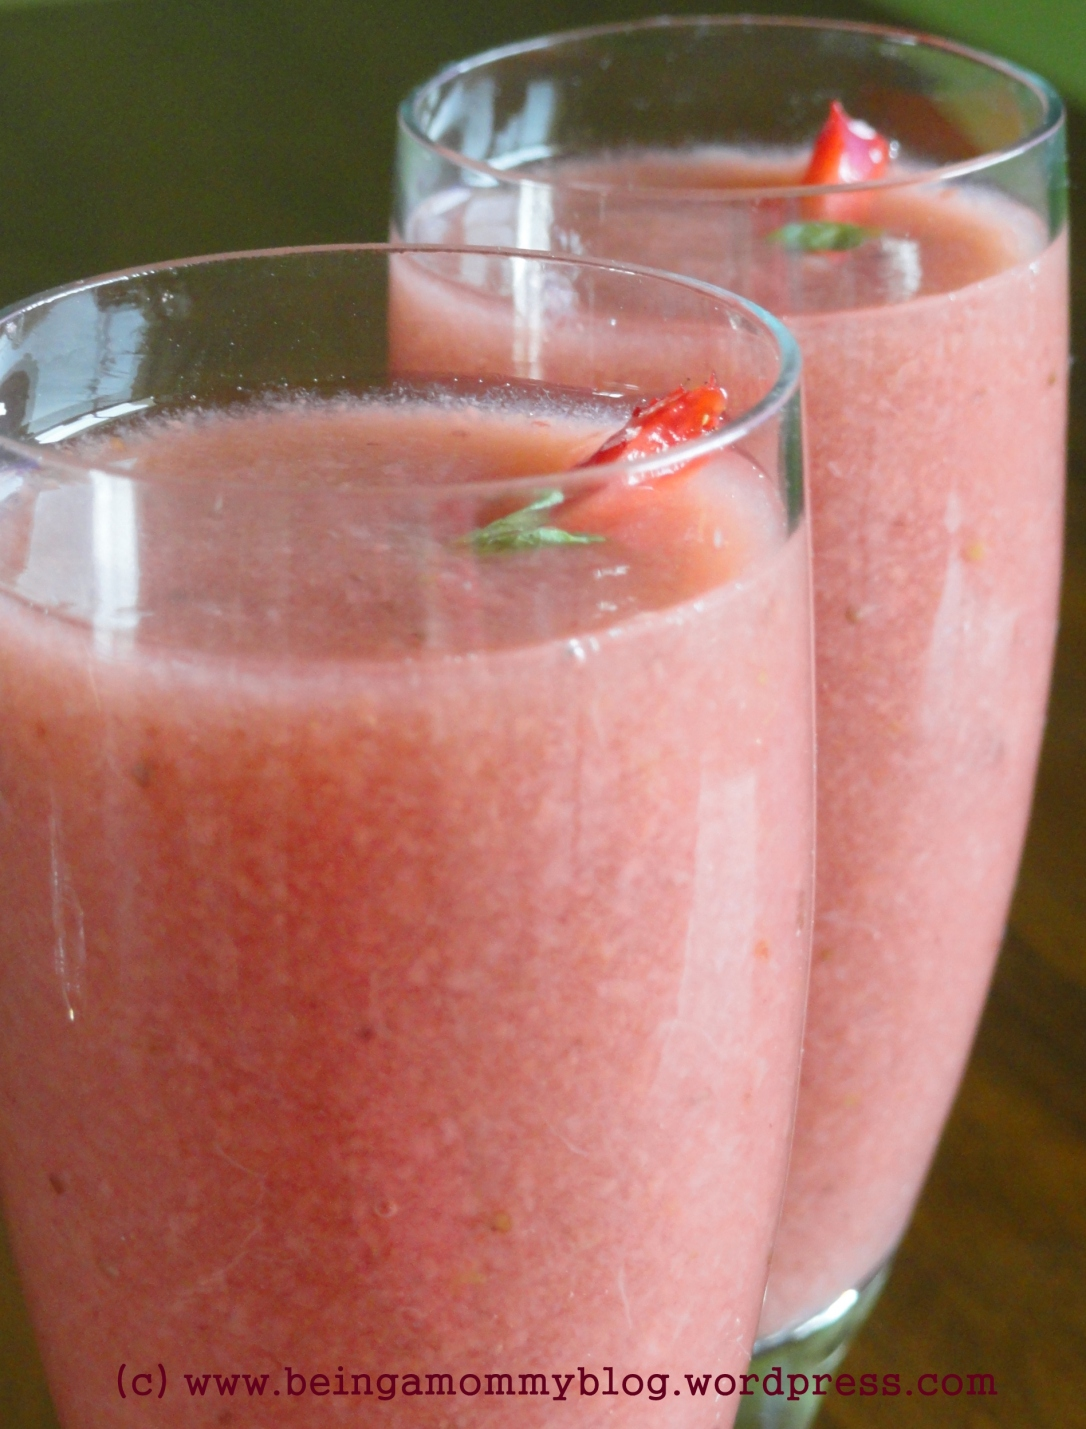 Strawberry & Guava Juice